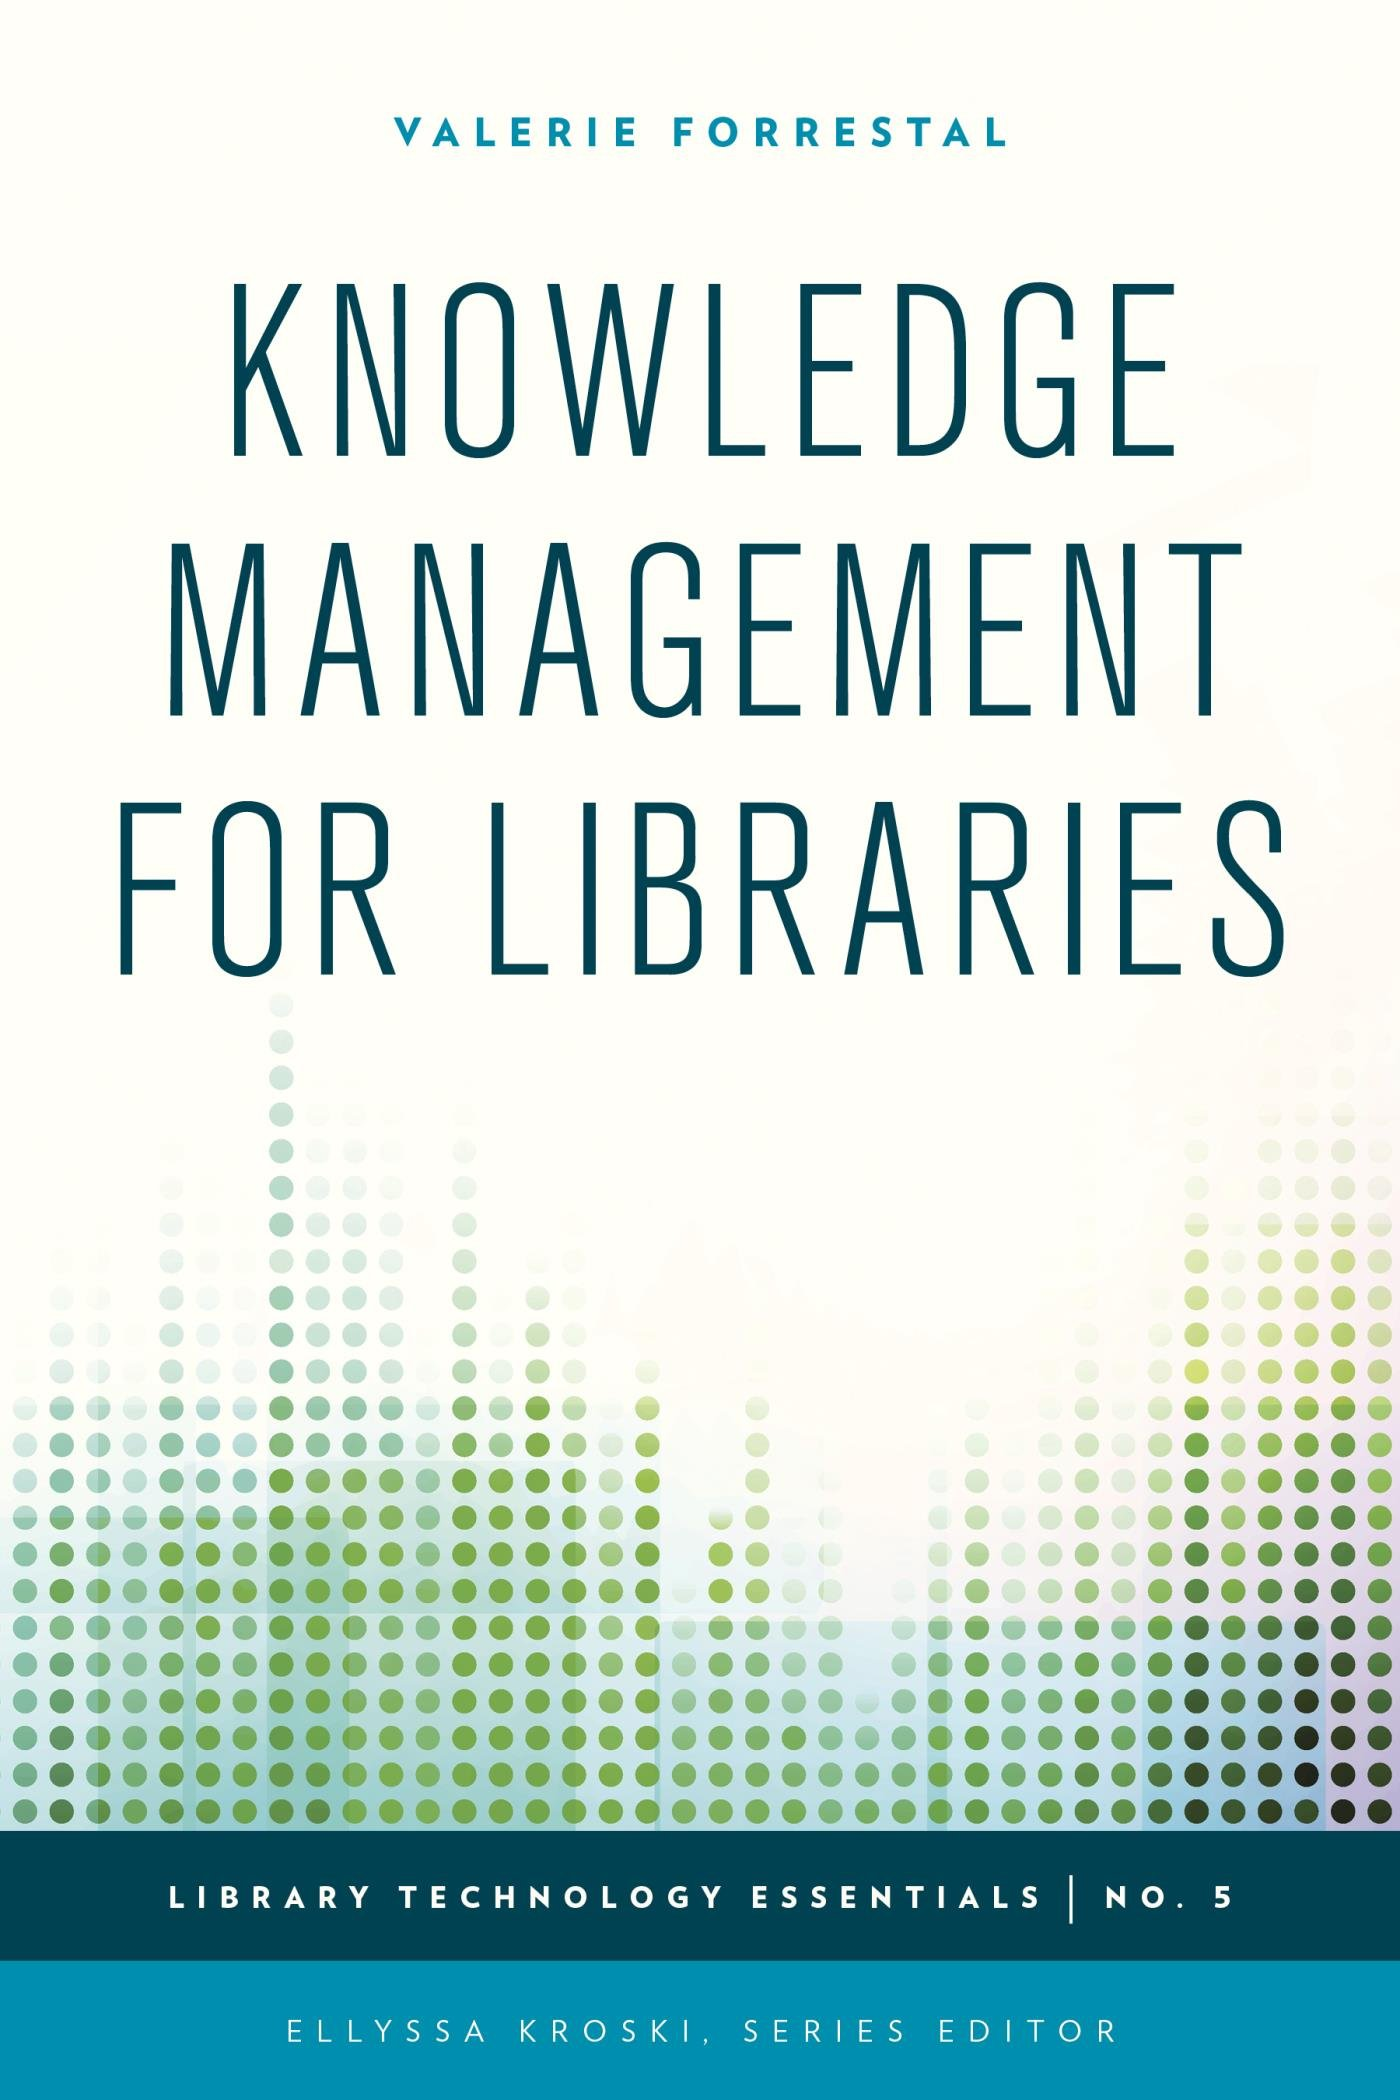 Knowledge Management For Libraries (Library Technology Essentials Book 5) (English Edition)